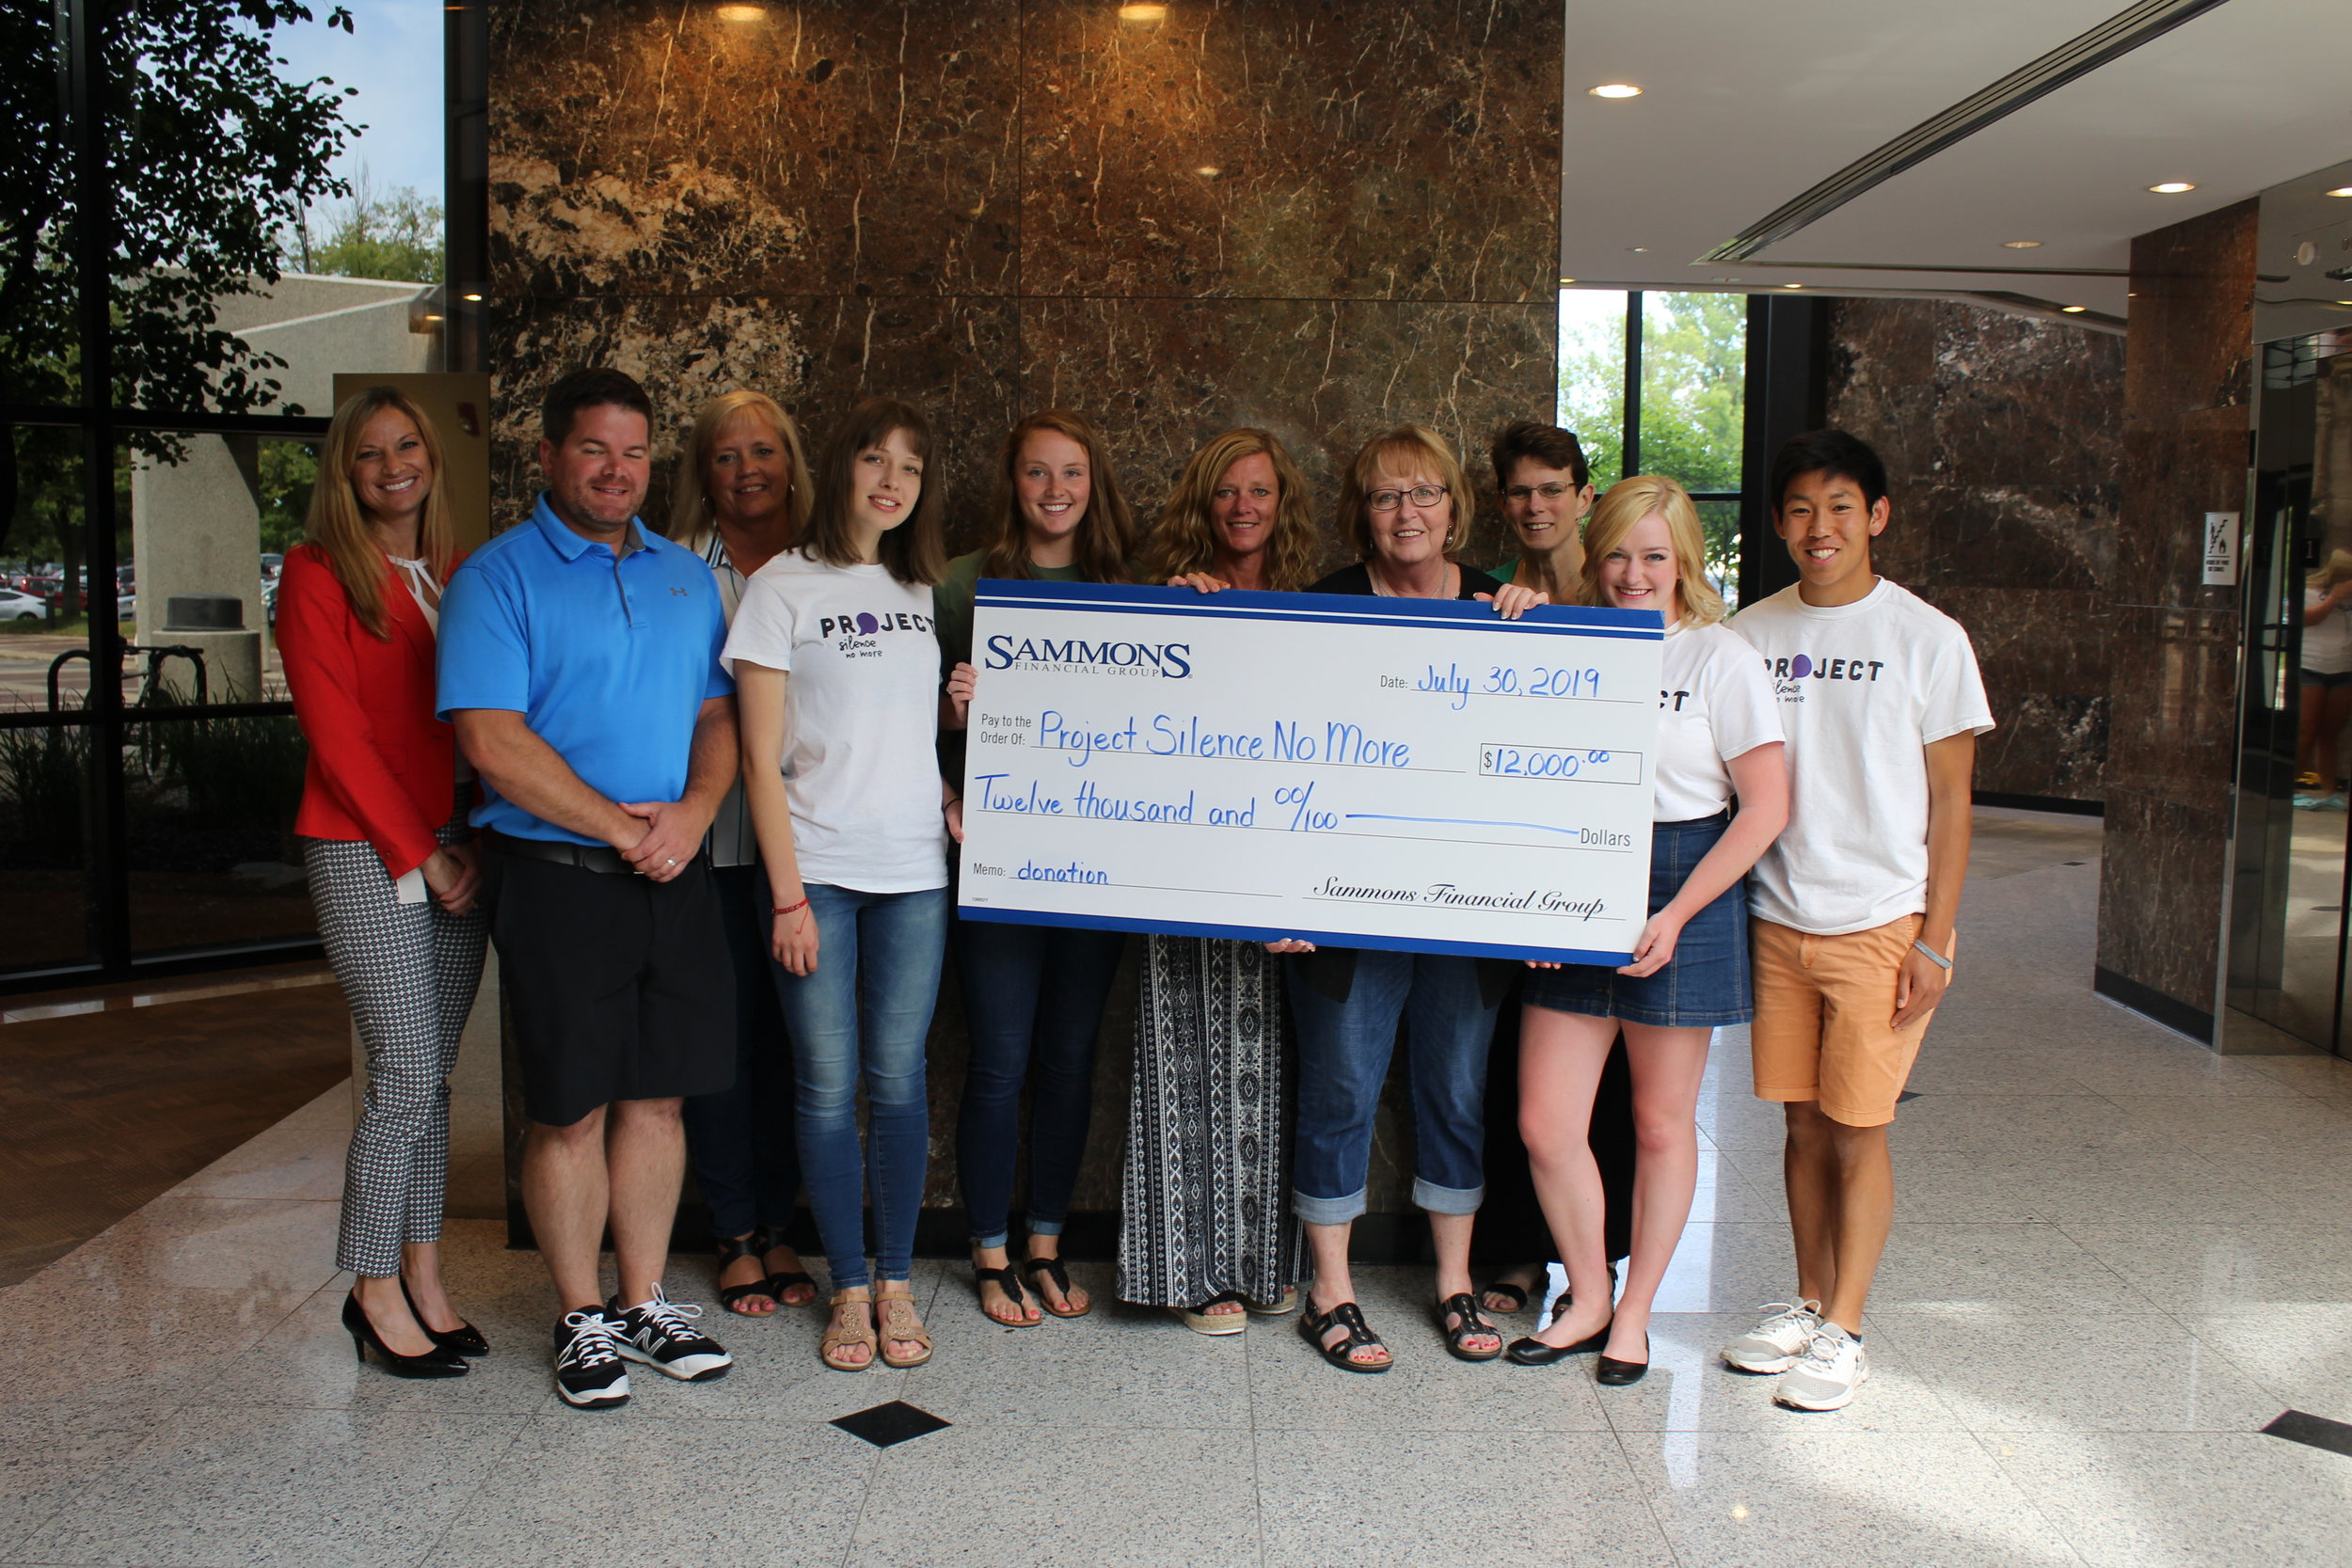 Presentation of the check by the community outreach committee at Sammons Financial to Project Silence No More